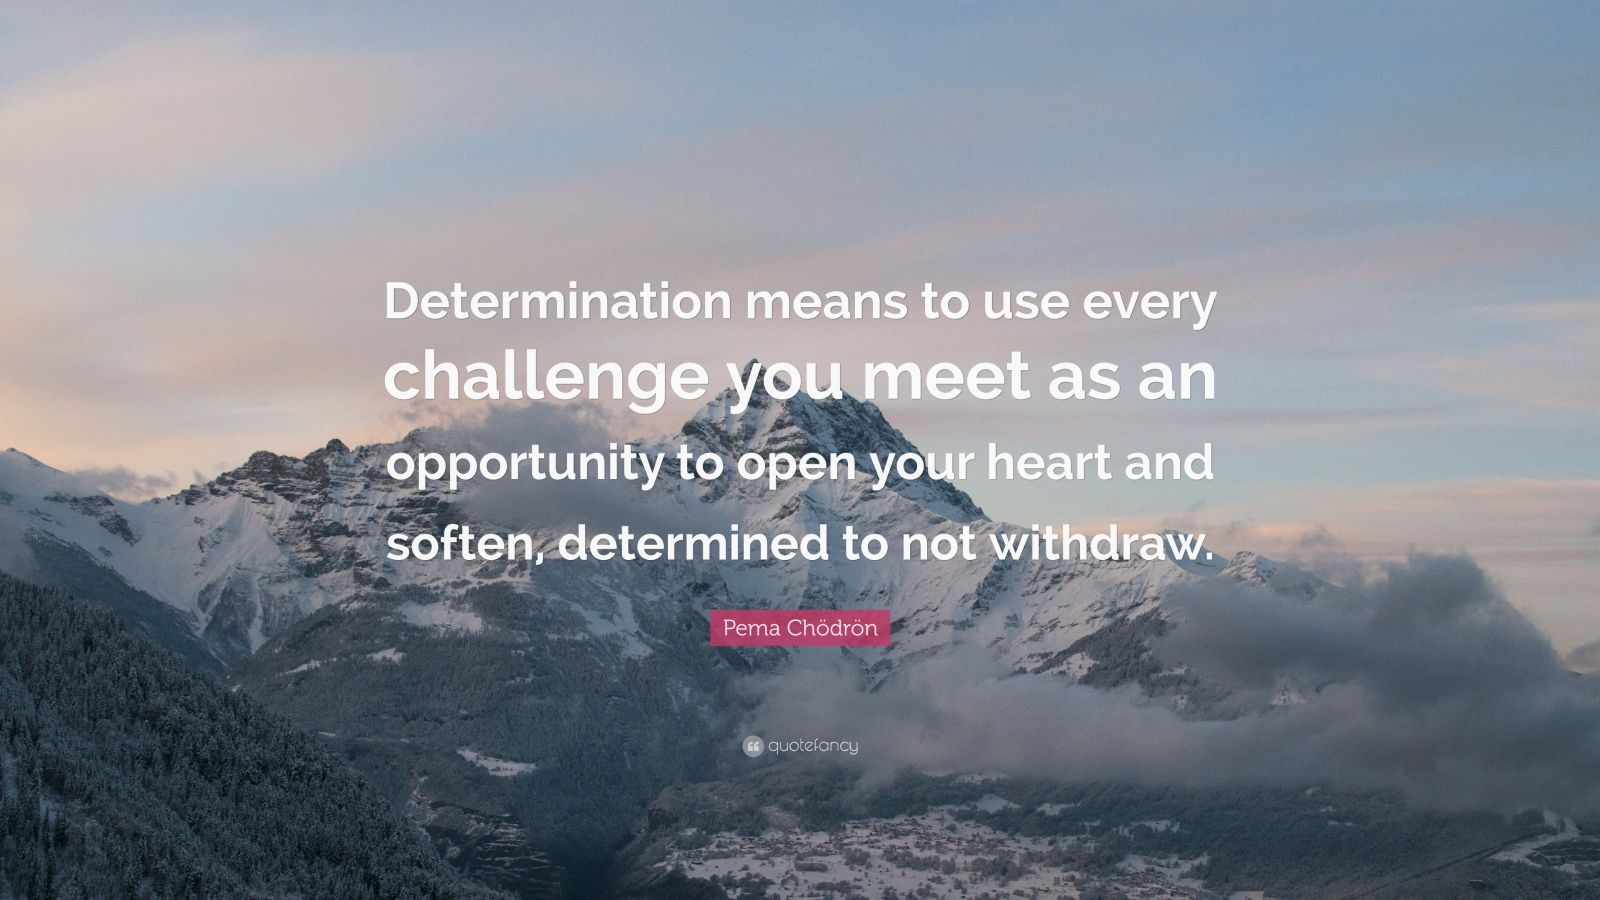 """Pema Chödrön Quote: """"Determination means to use every challenge you meet as an opportunity to open your heart and soften, determined to not withdraw."""""""